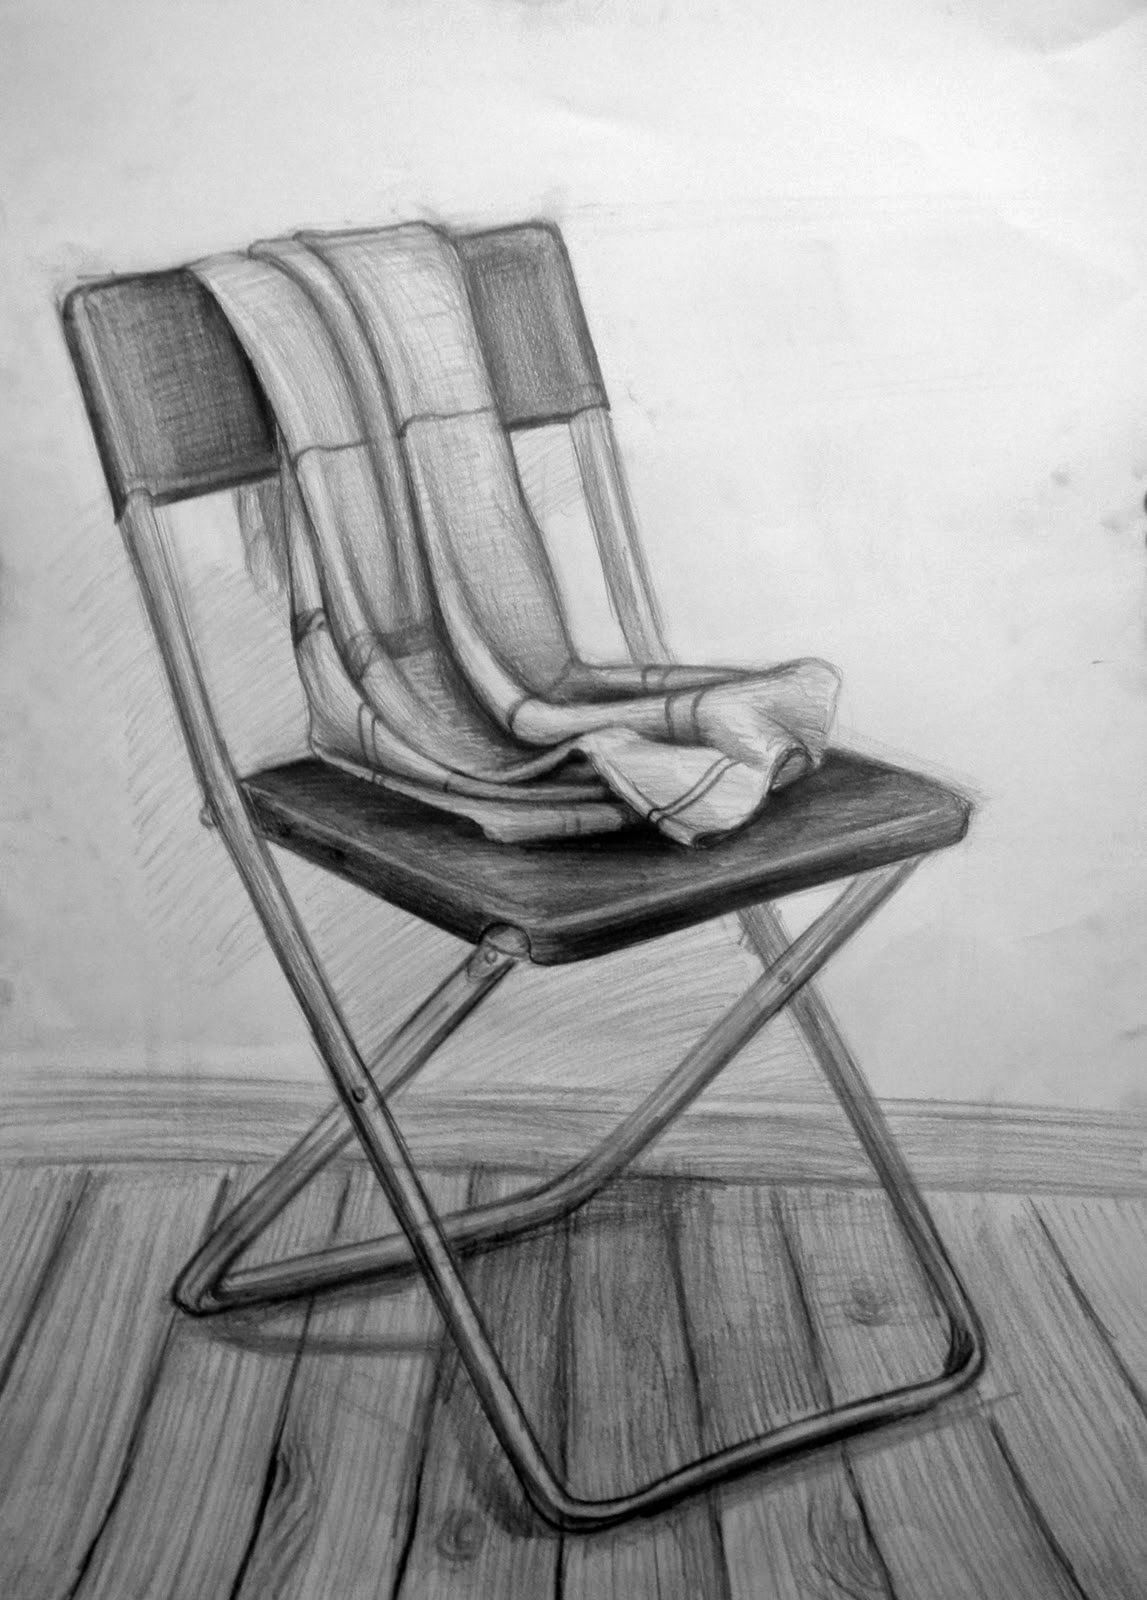 easy to draw chair how to draw a chair drawingforallnet chair draw easy to